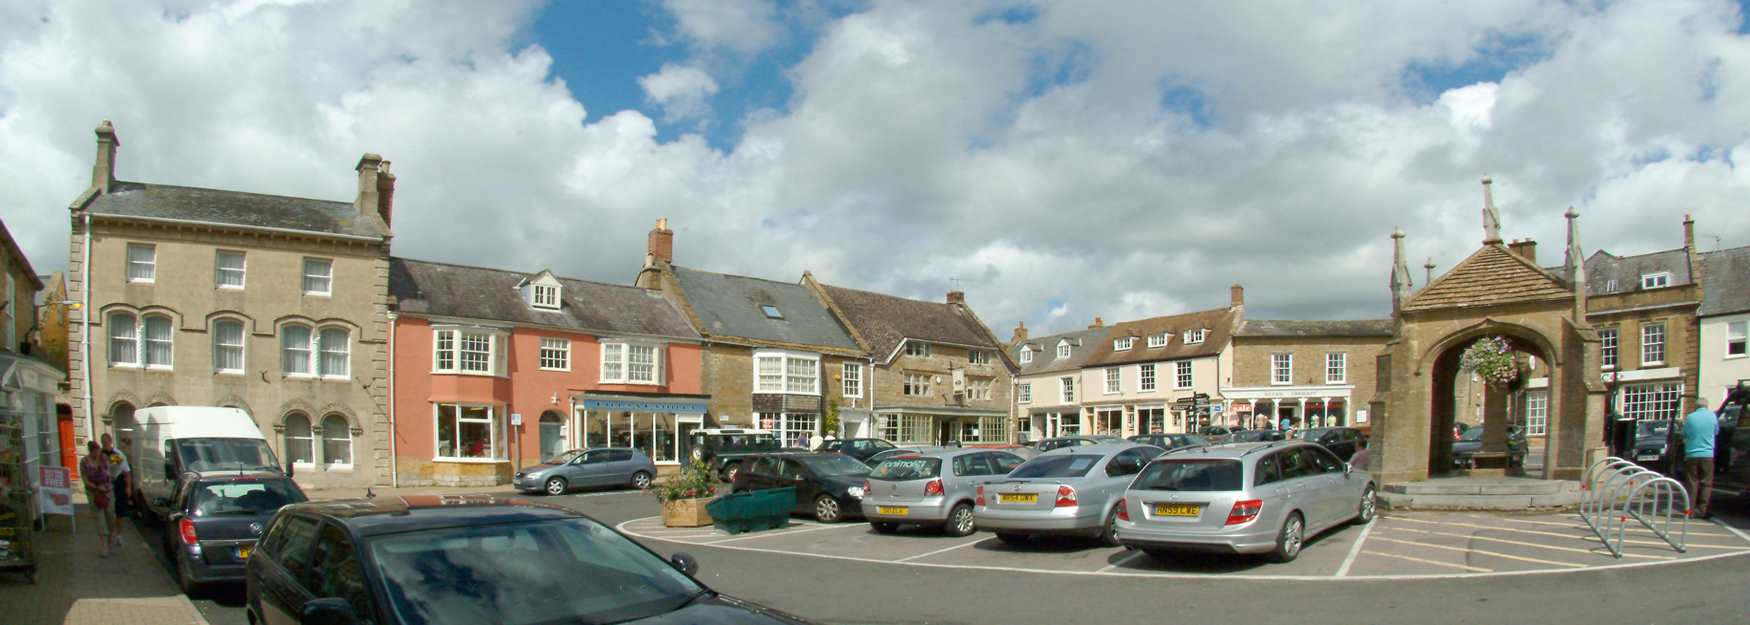 beaminster_110617_a